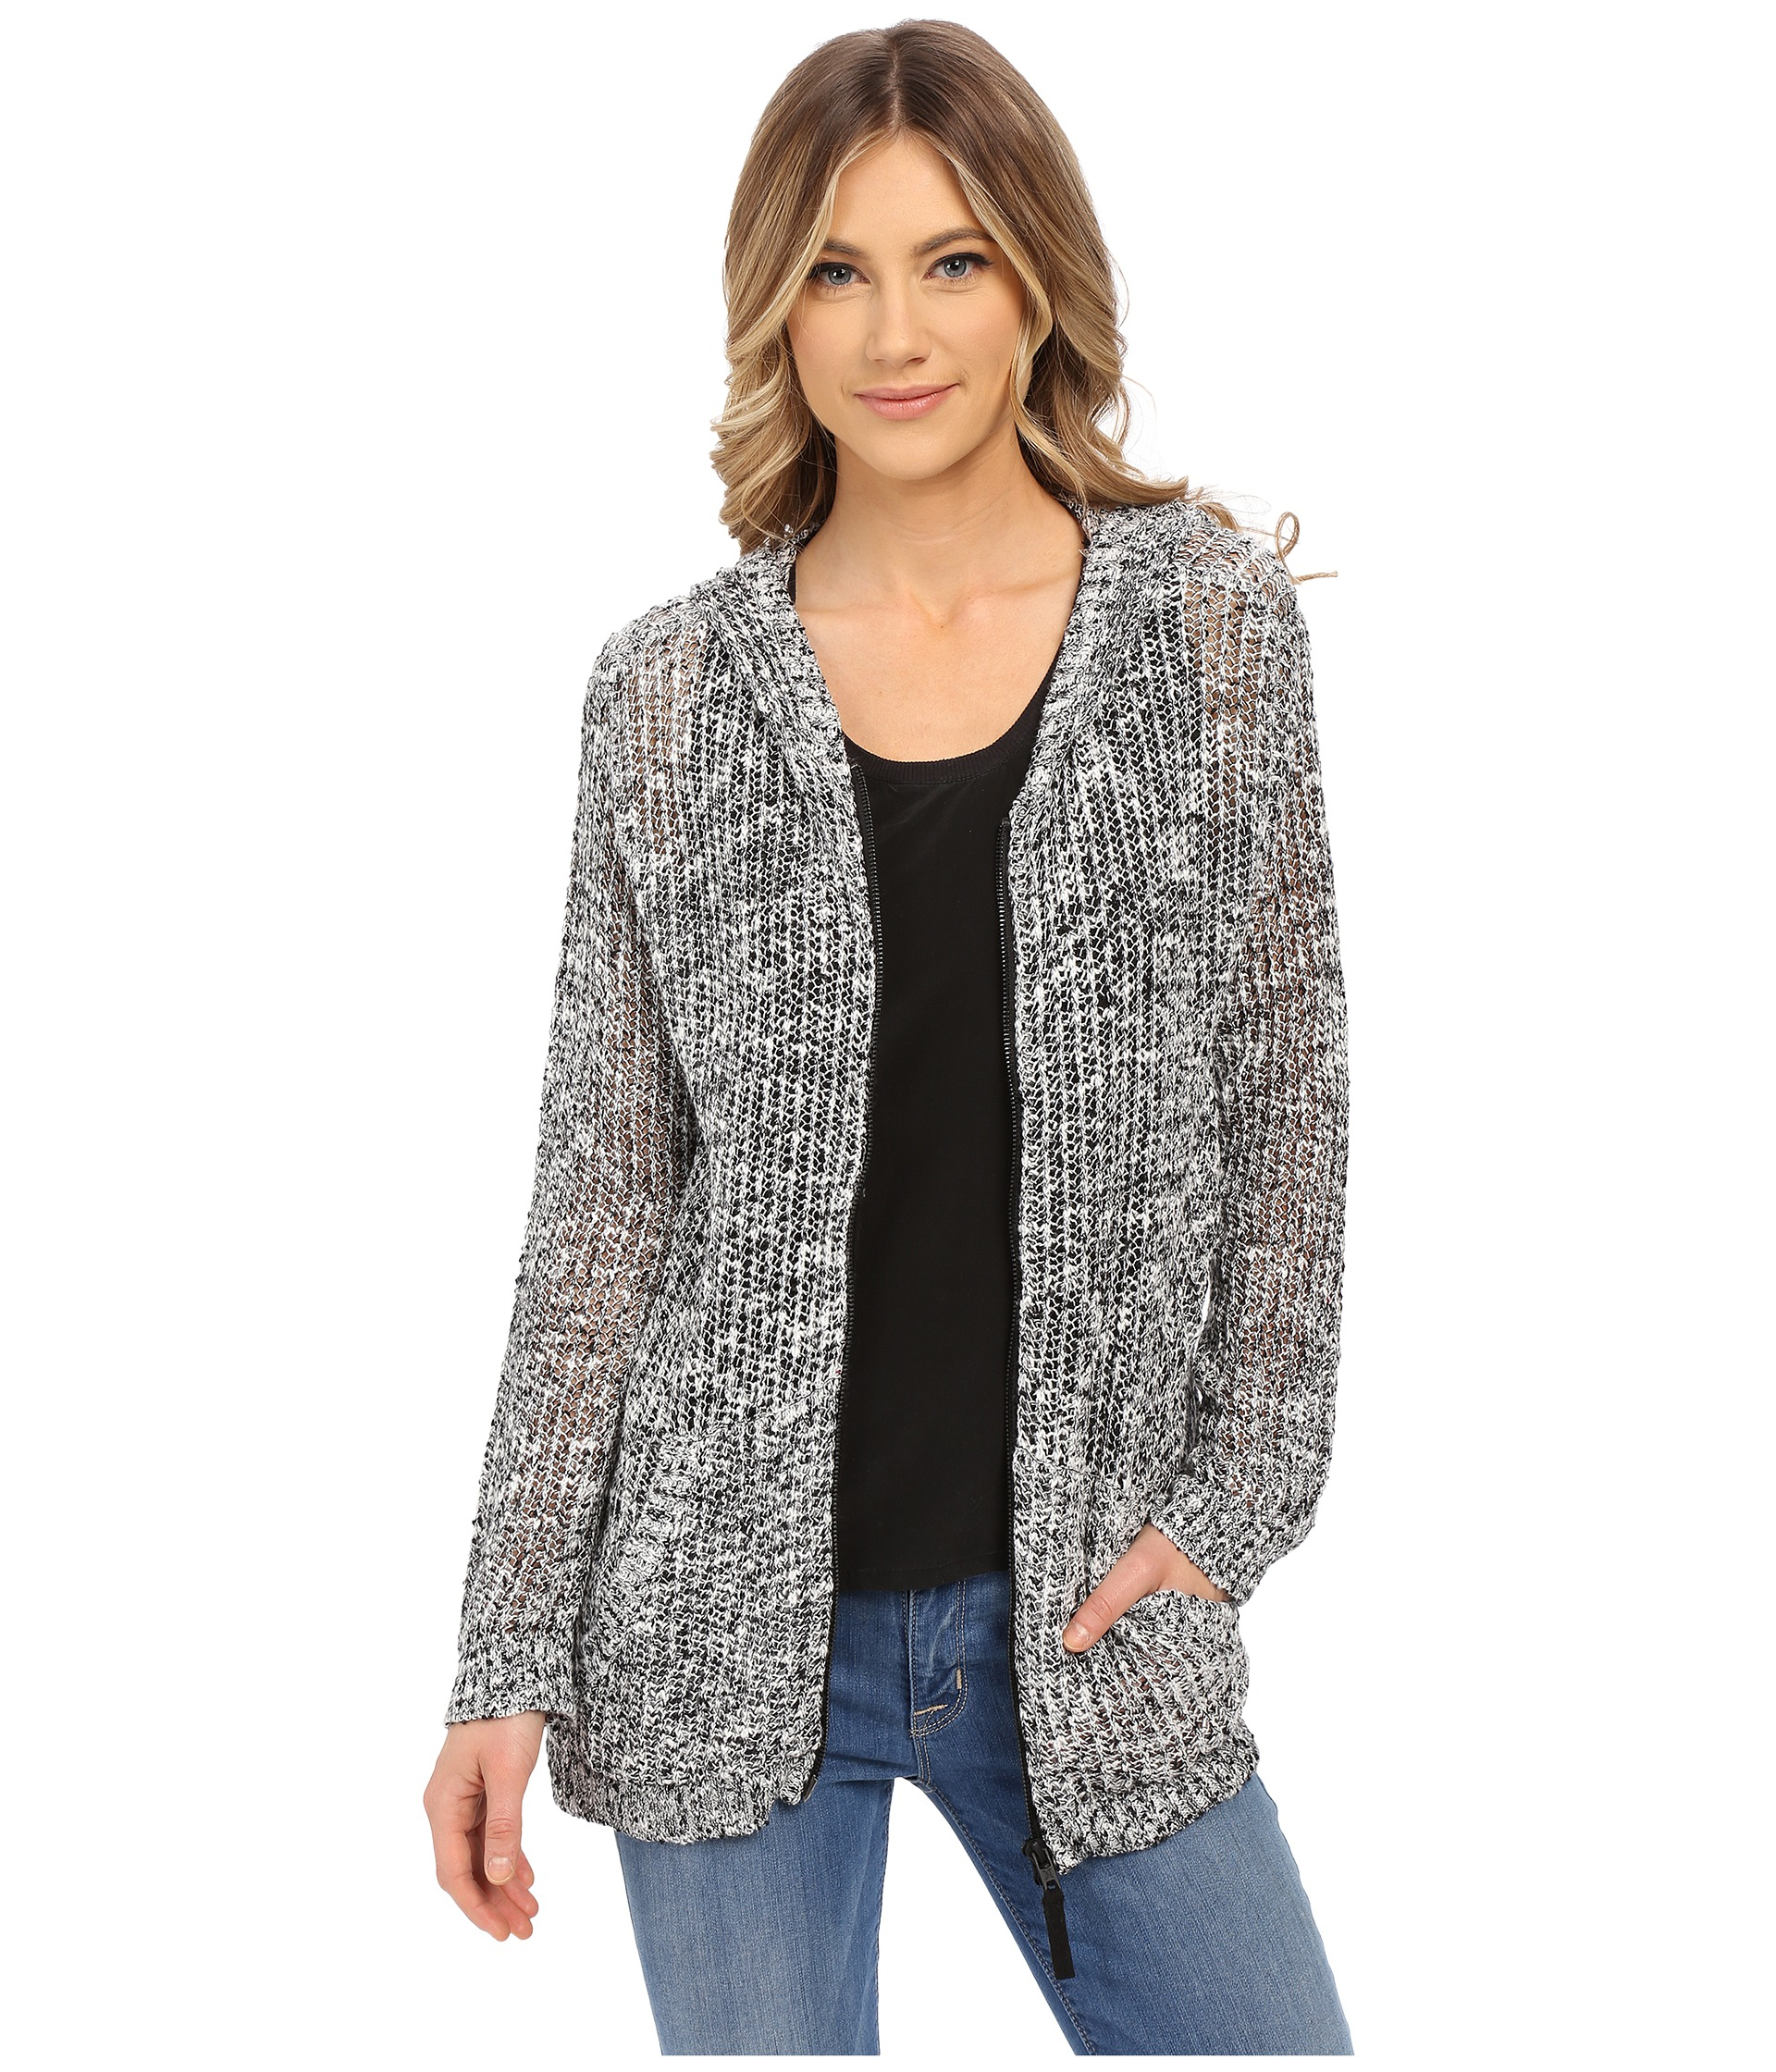 Hurley Laslo Hooded Cardigan in Black | Lyst